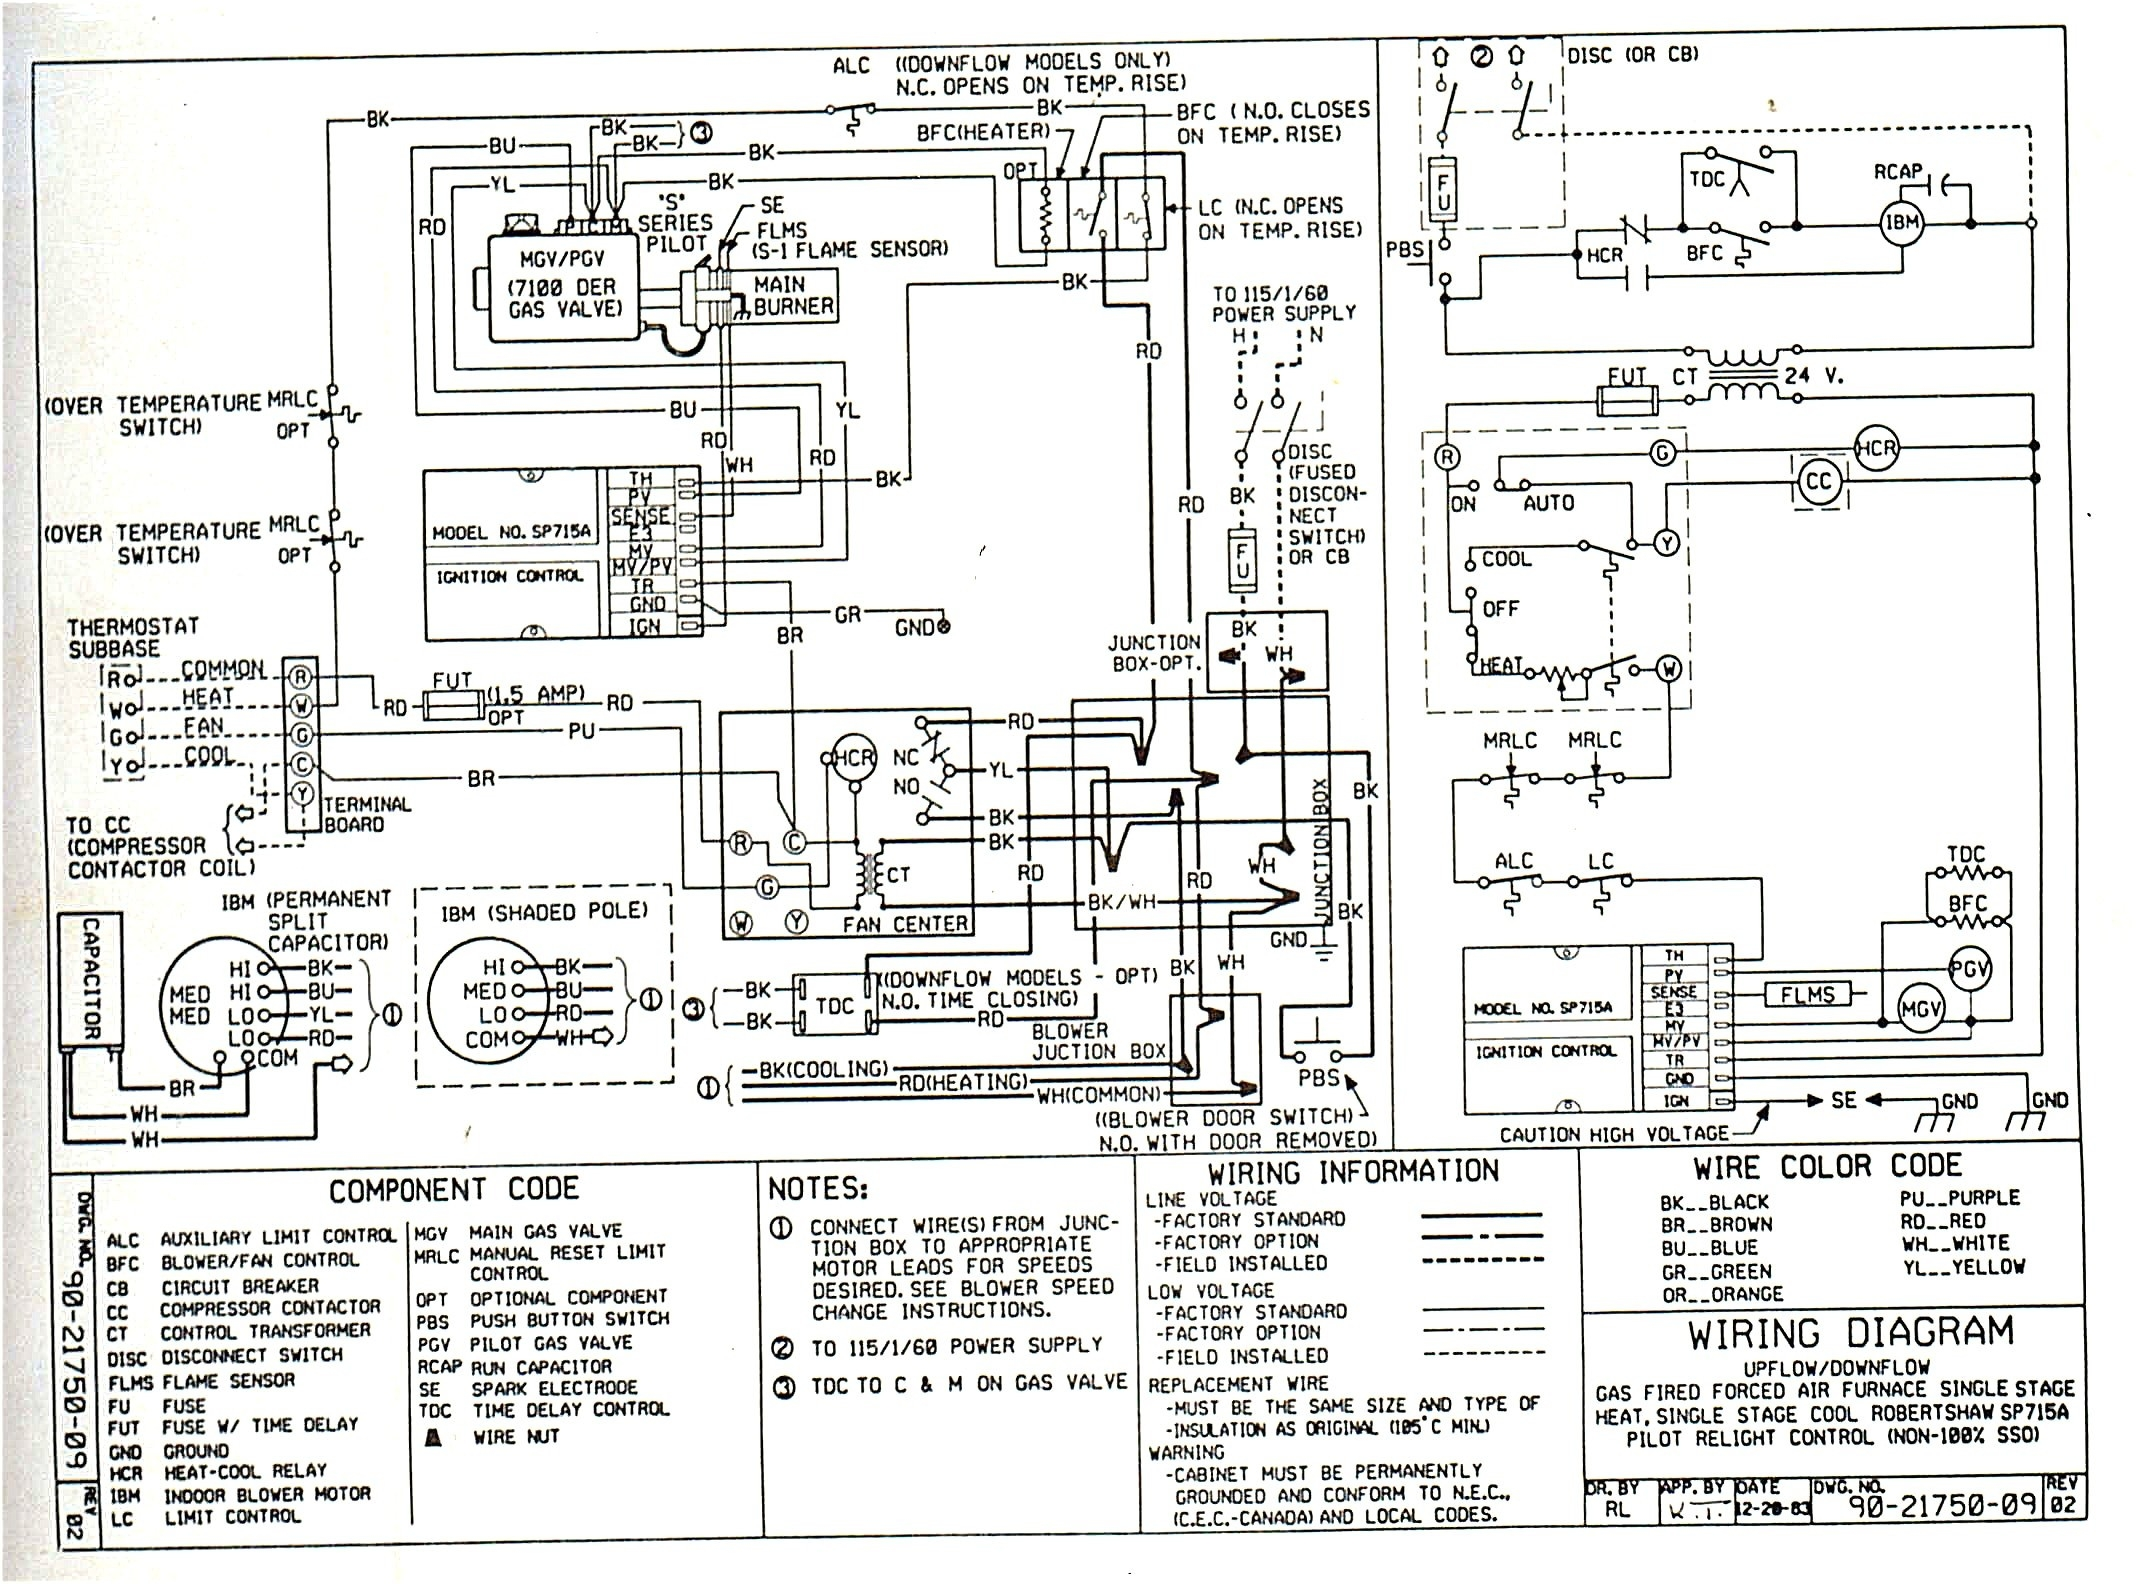 medium resolution of schematic tempstar tempstar for wiring heil nulk075dg05 wiringschematic tempstar tempstar for wiring heil nulk075dg05 wiring diagram